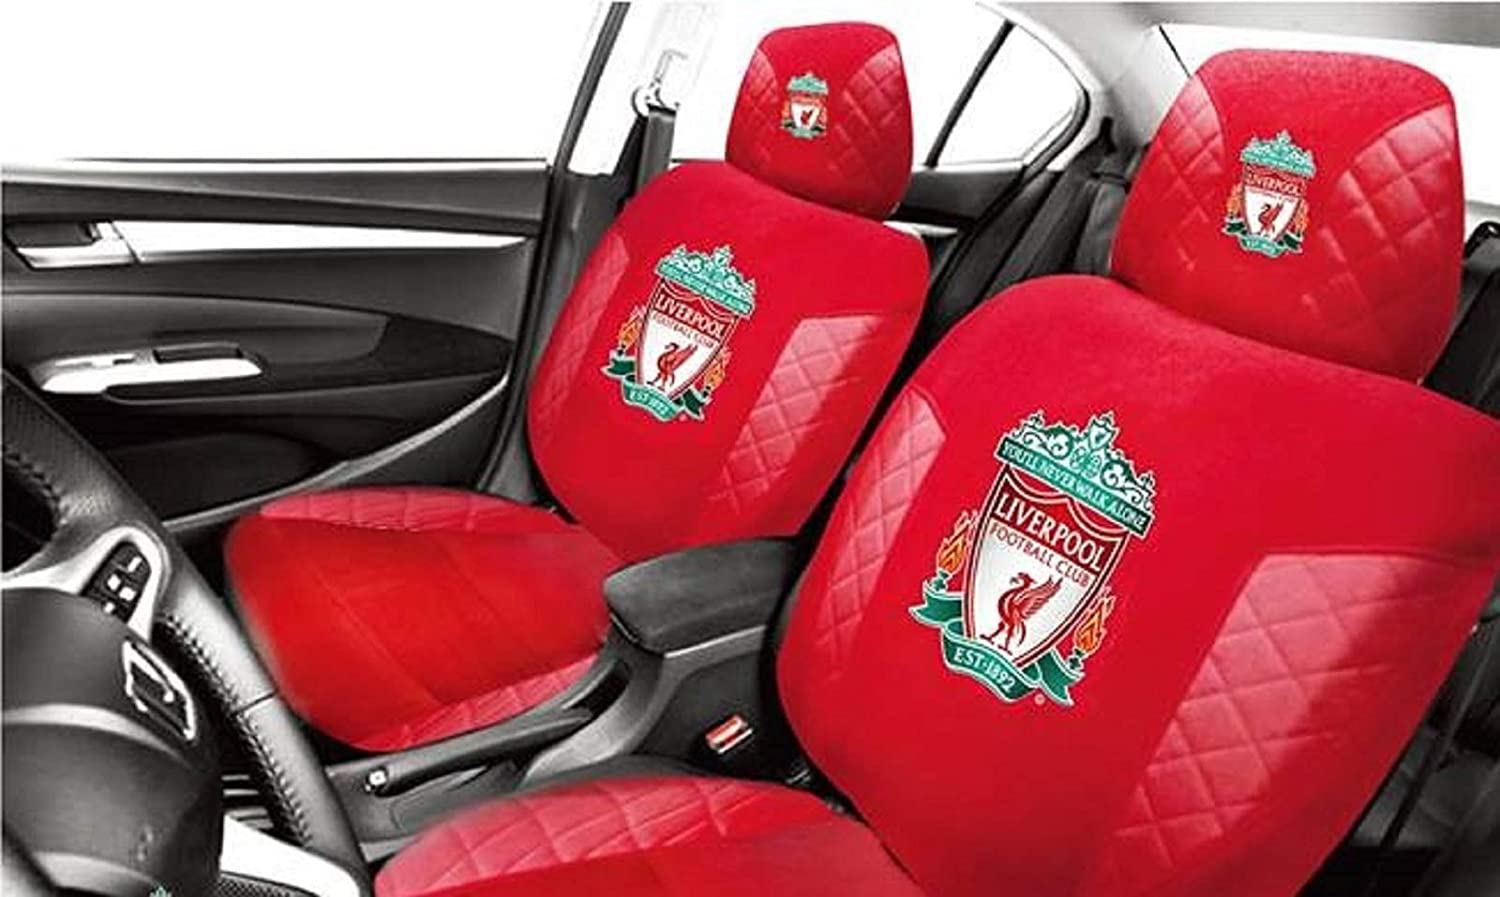 OFFICIAL LIVERPOOL FOOTBALL CLUB Car Interior Accessory Headrest Cover